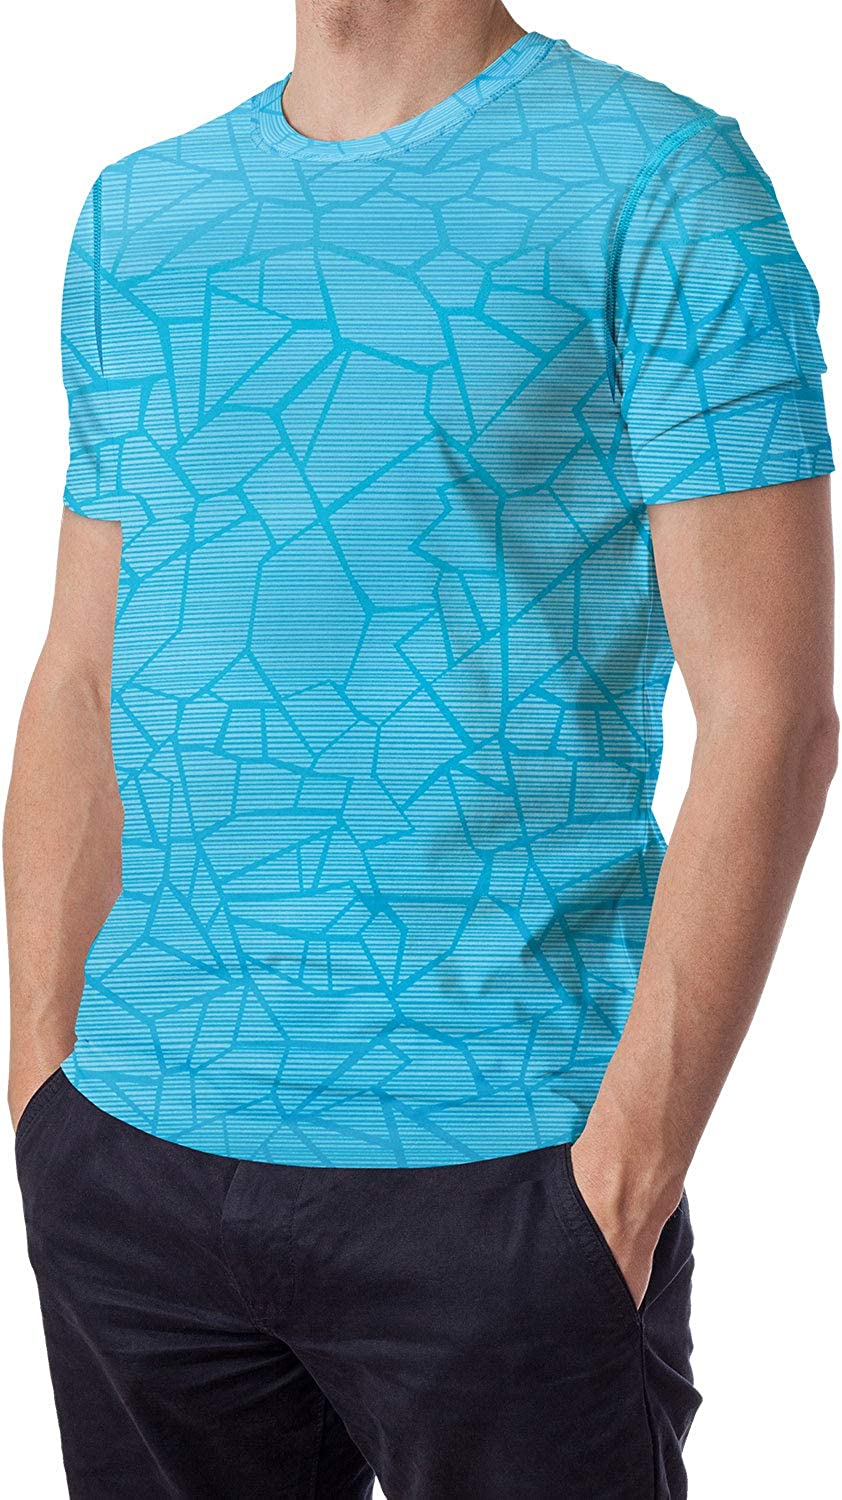 Moisture Wicking T-Shirt for Men Athletic Undershirt Dry Fit Dri-Fit Short Sleeve Tee Shirt 3-Pack